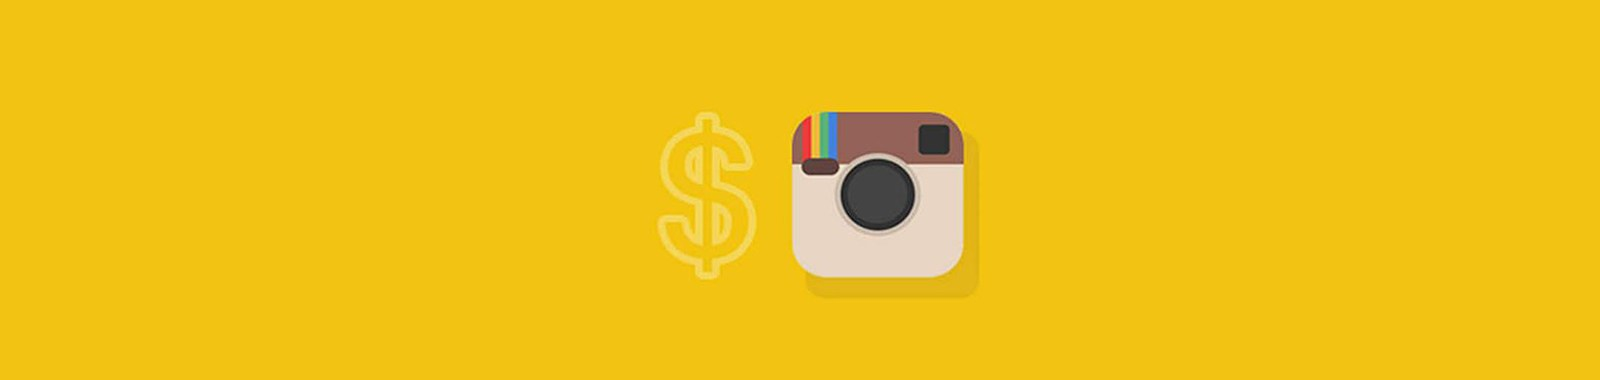 Instagram-money-eye